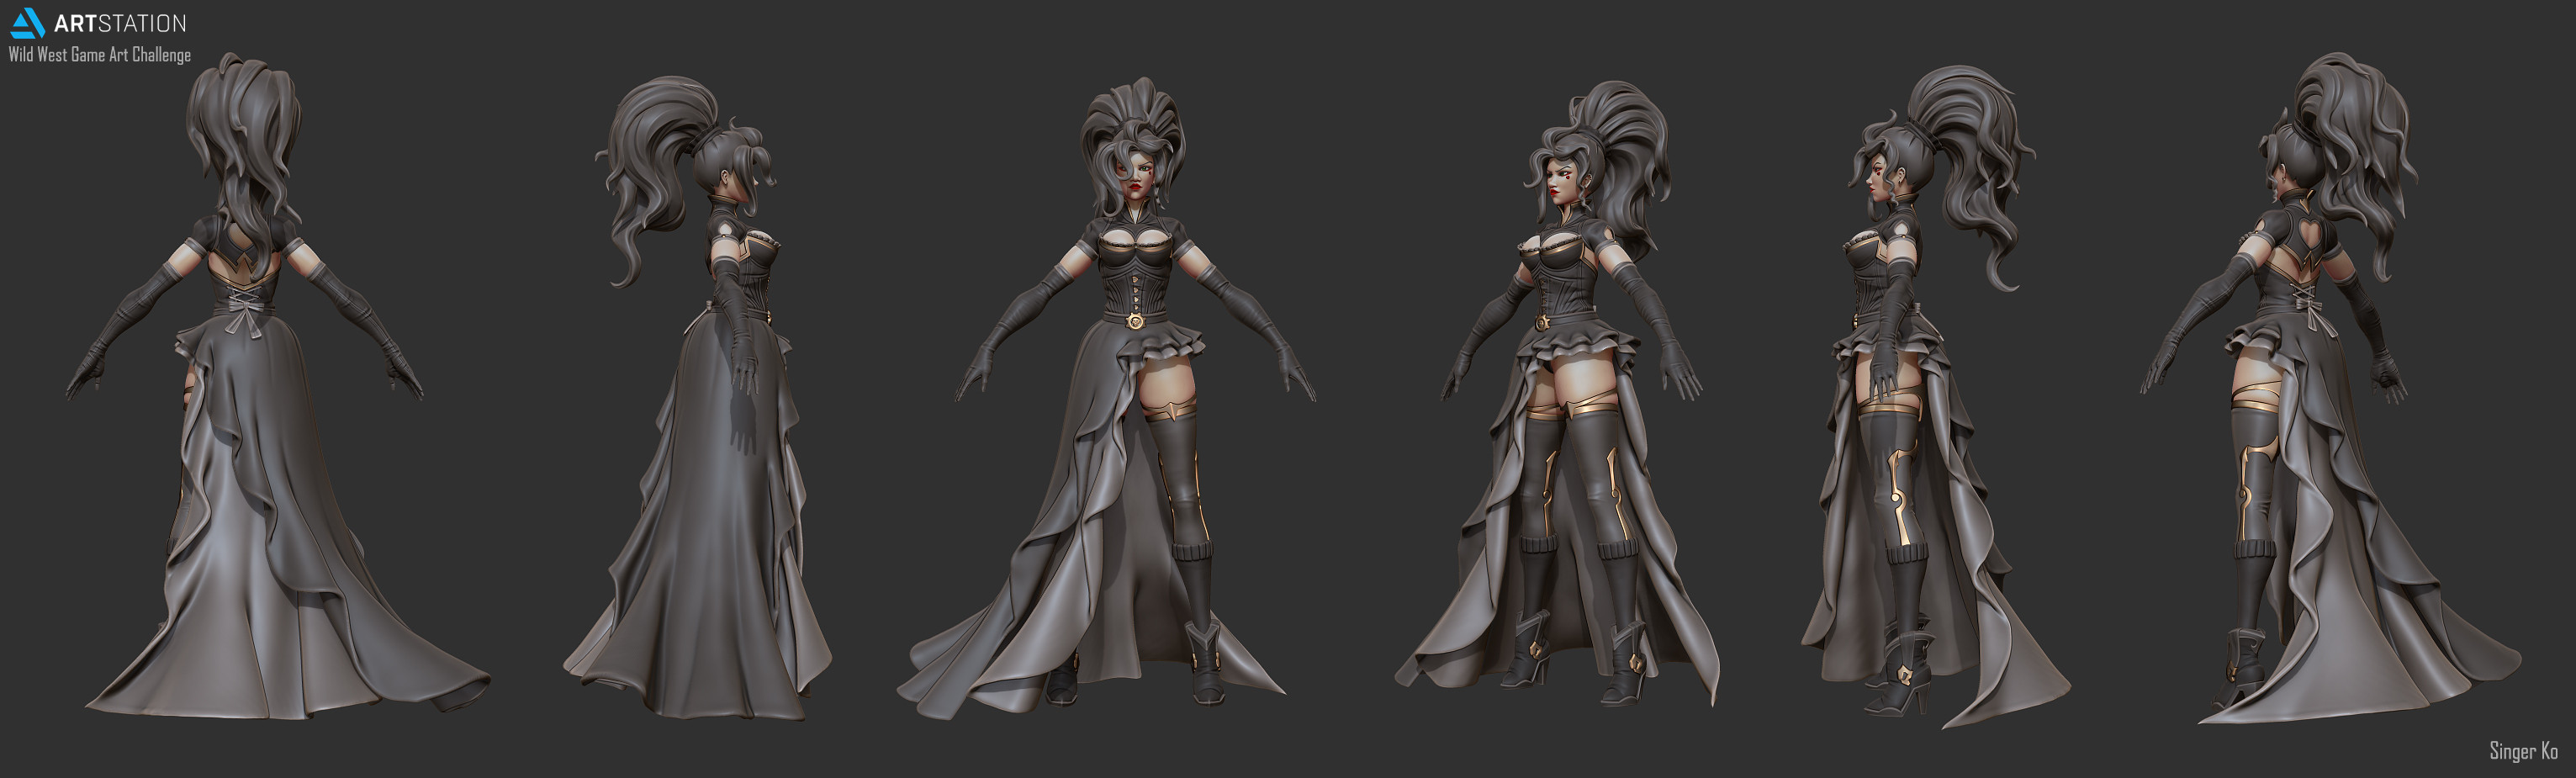 ZBrush Character